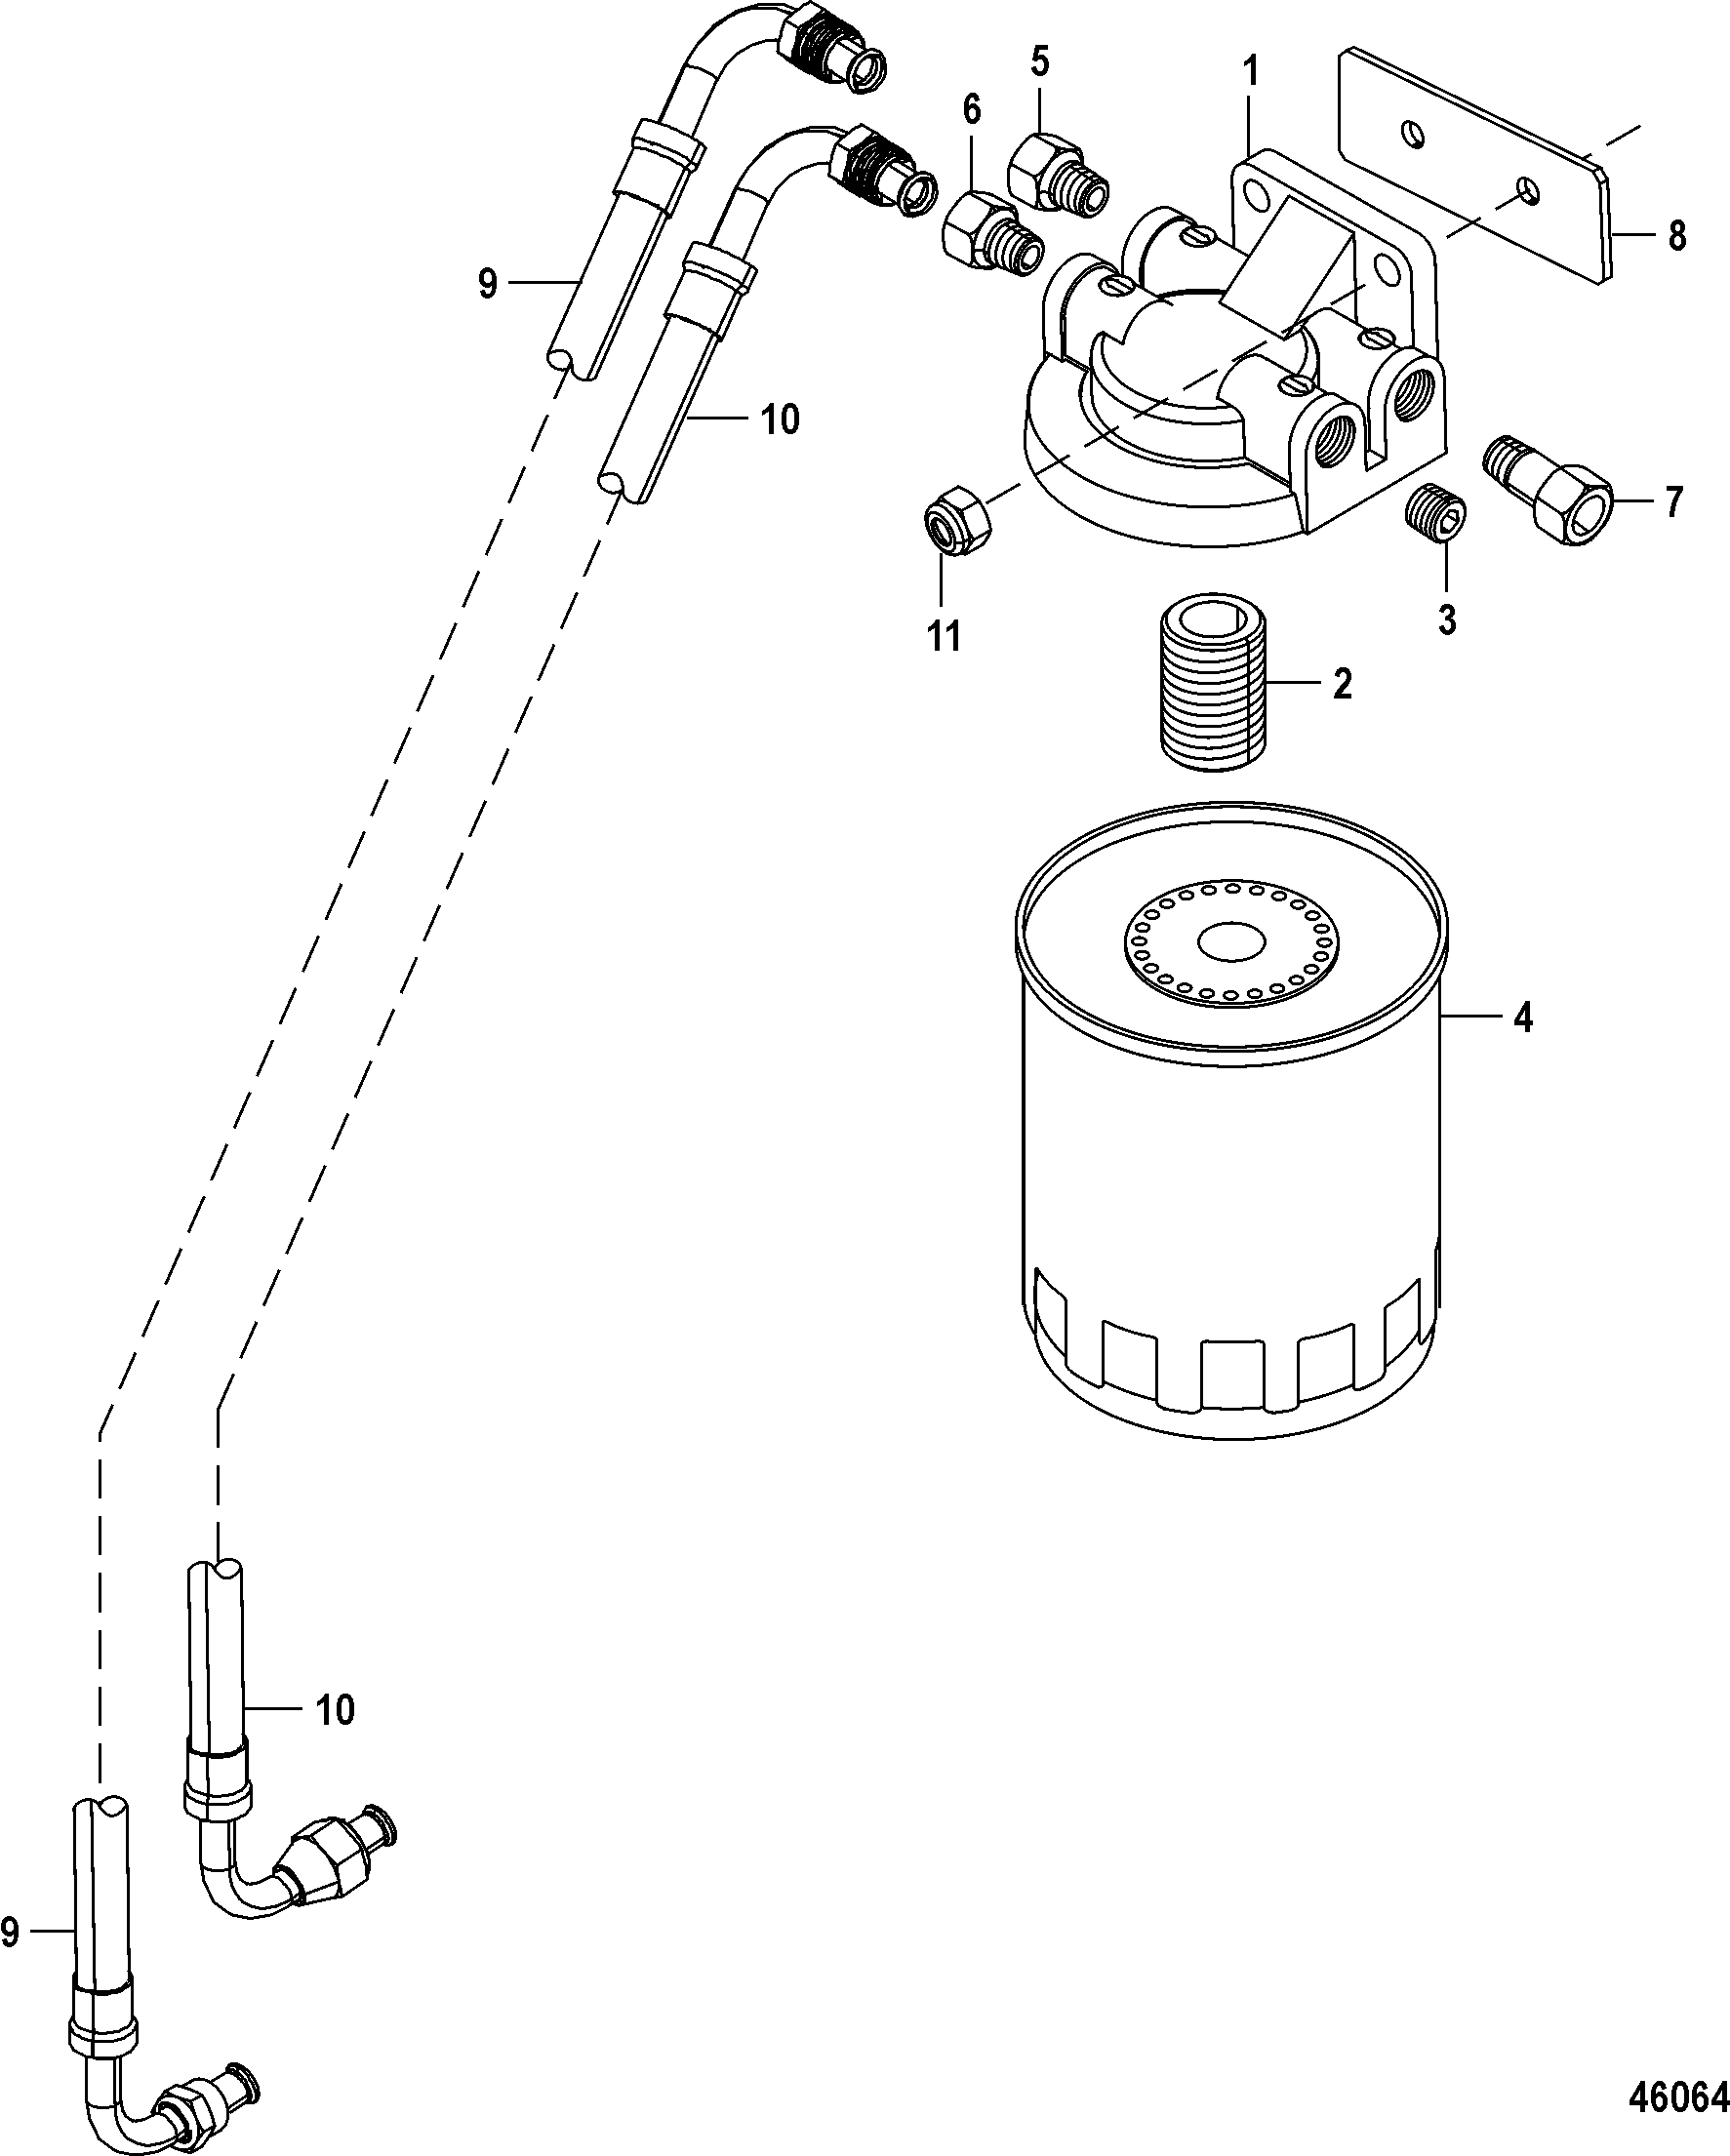 hight resolution of 1990 chevy lumina fuel filter fuse box diagram for a 1990 chevy lumina 1990 chevy 1500